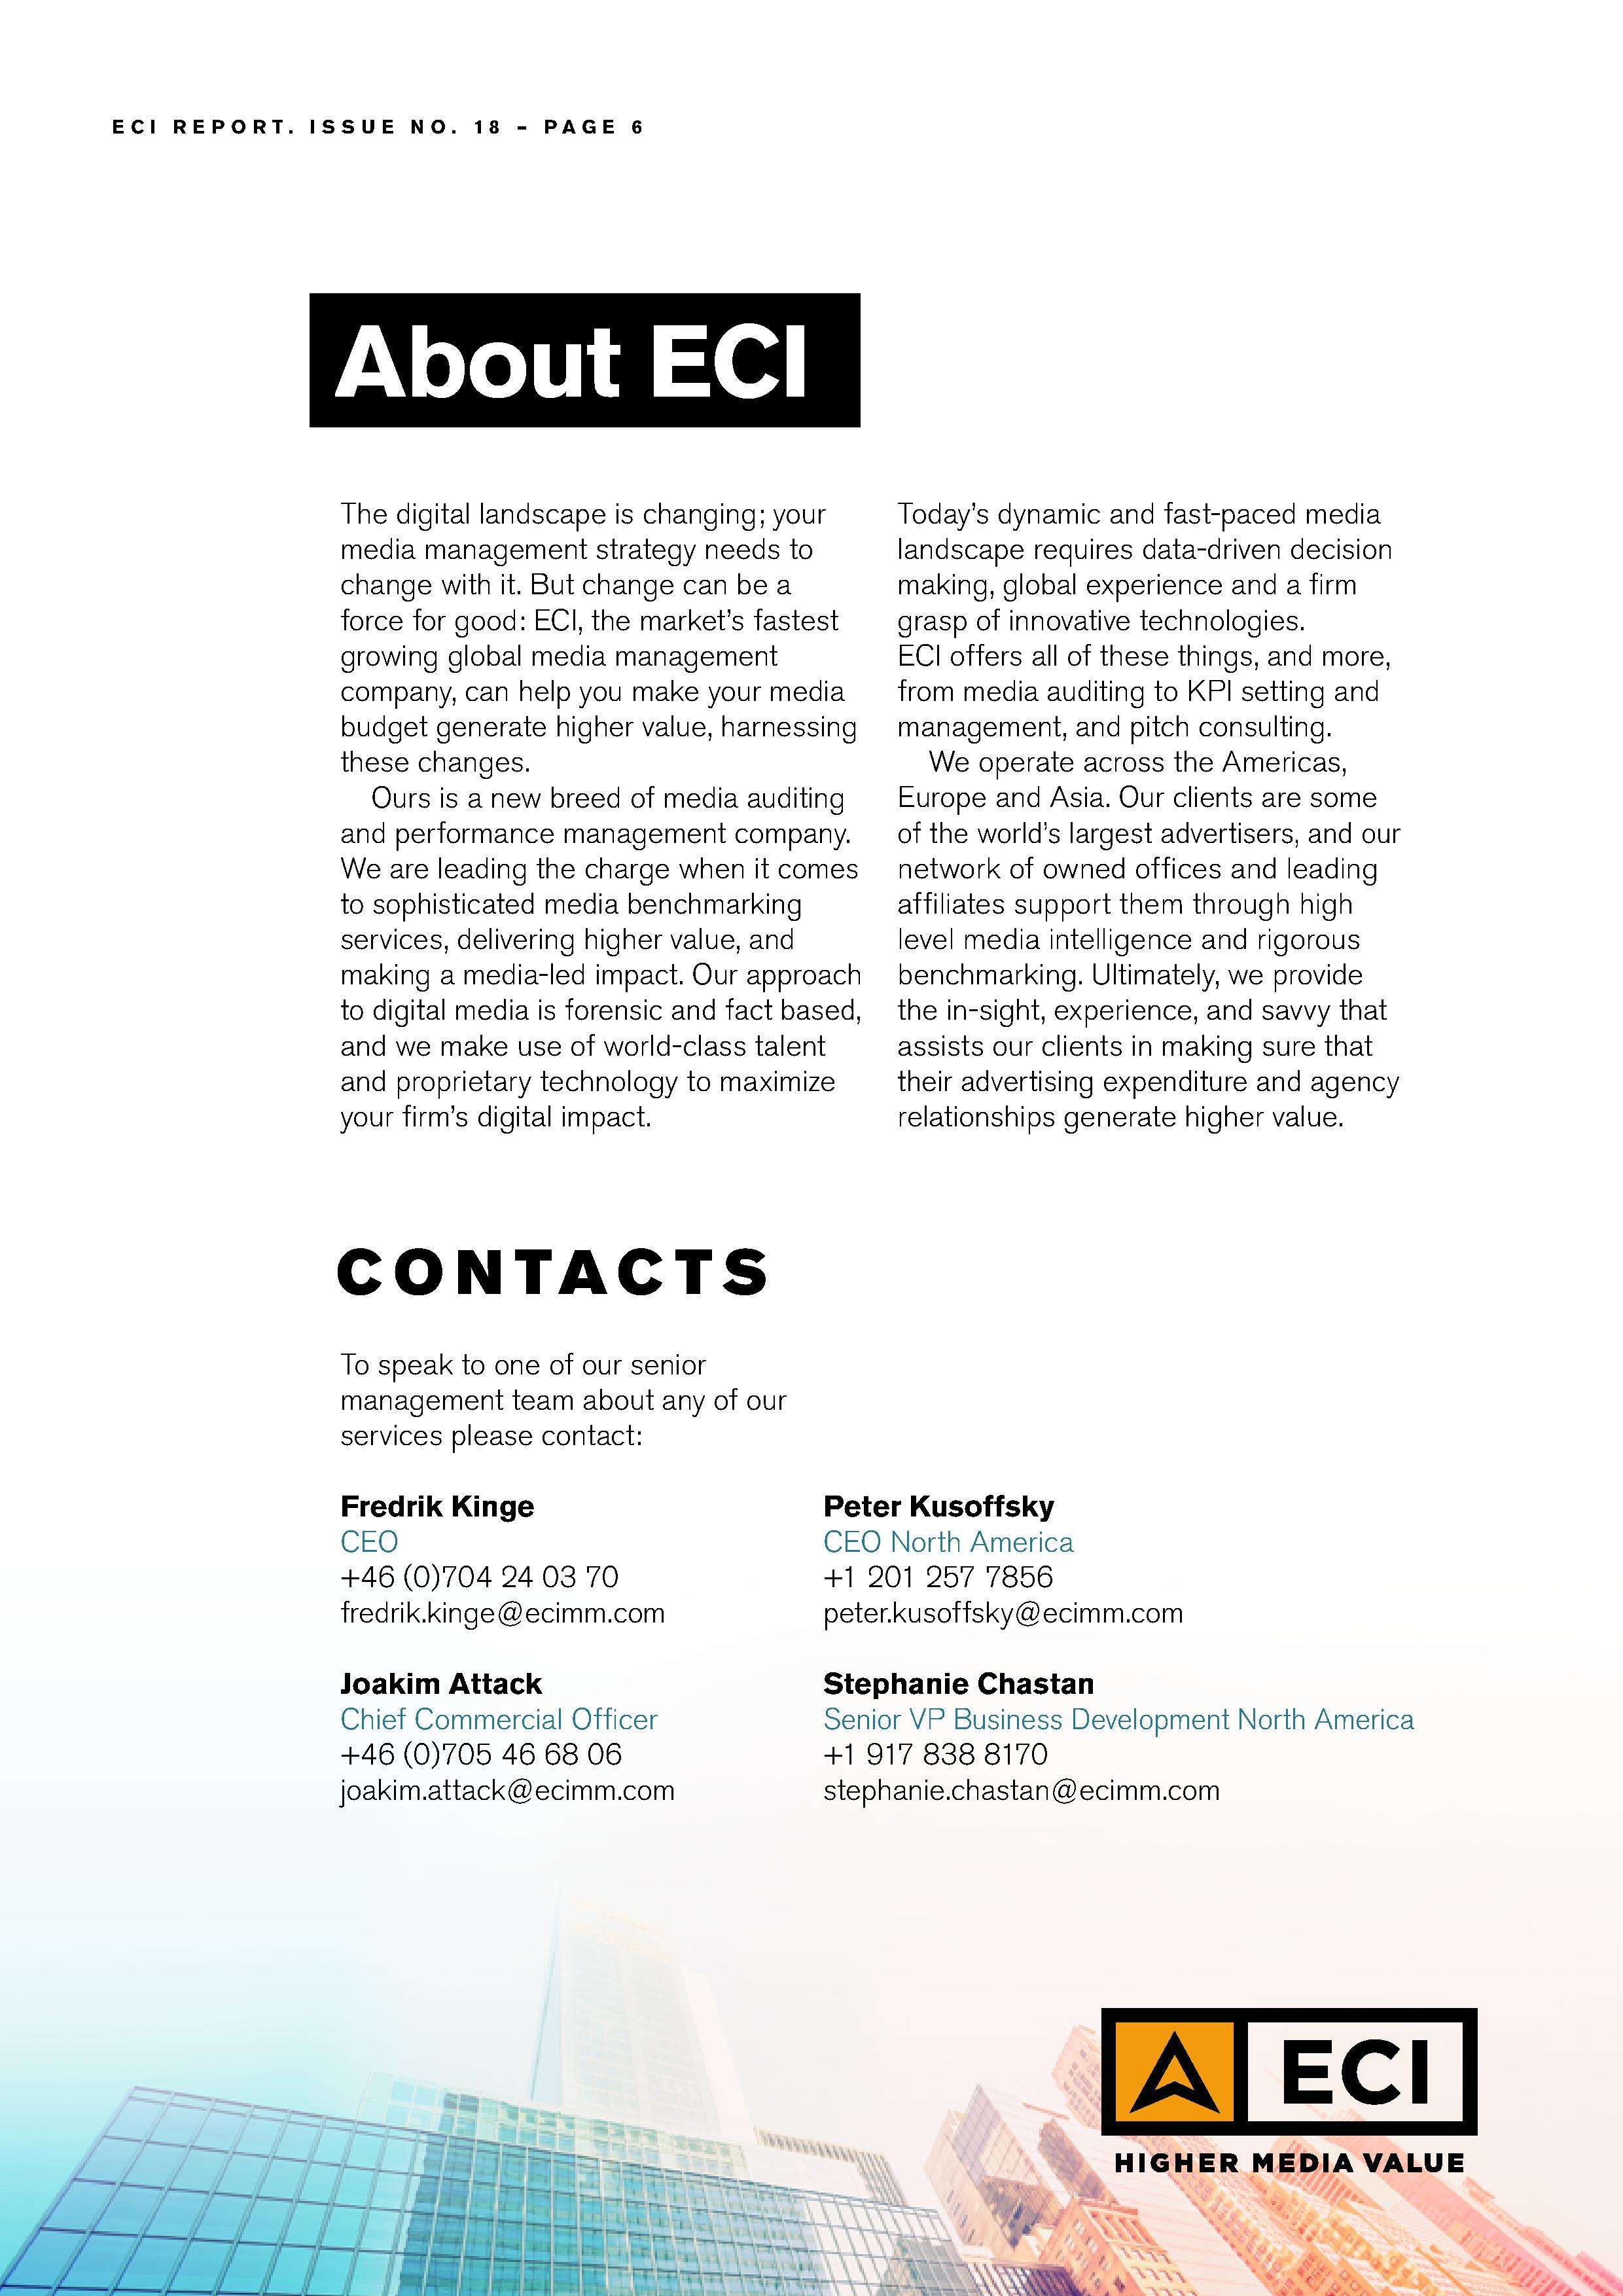 eci_report_issue18_2016006